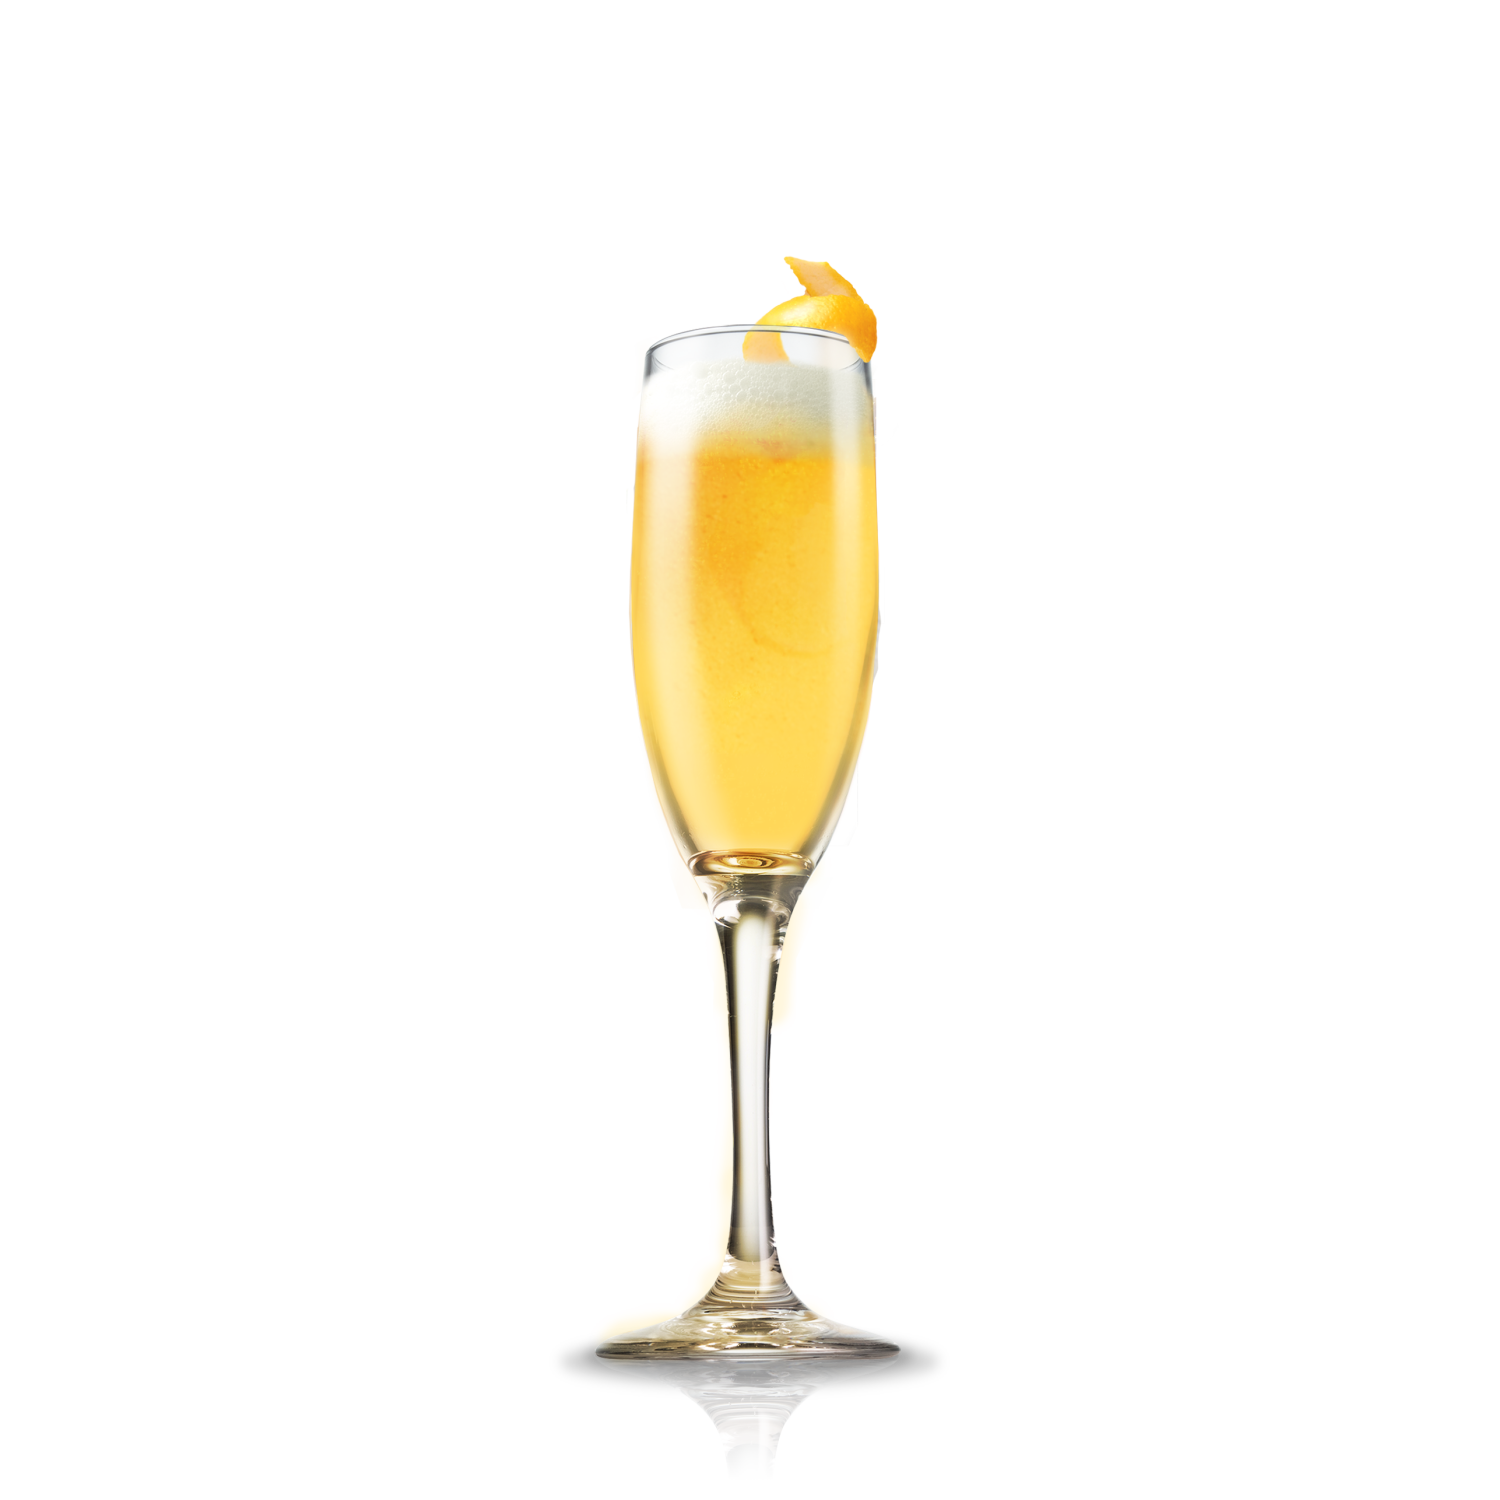 The Mimosa - Mostly ordered at brunch, the delicious half champagne/half citrus juice drink signifies that you're classic, fun, and social.